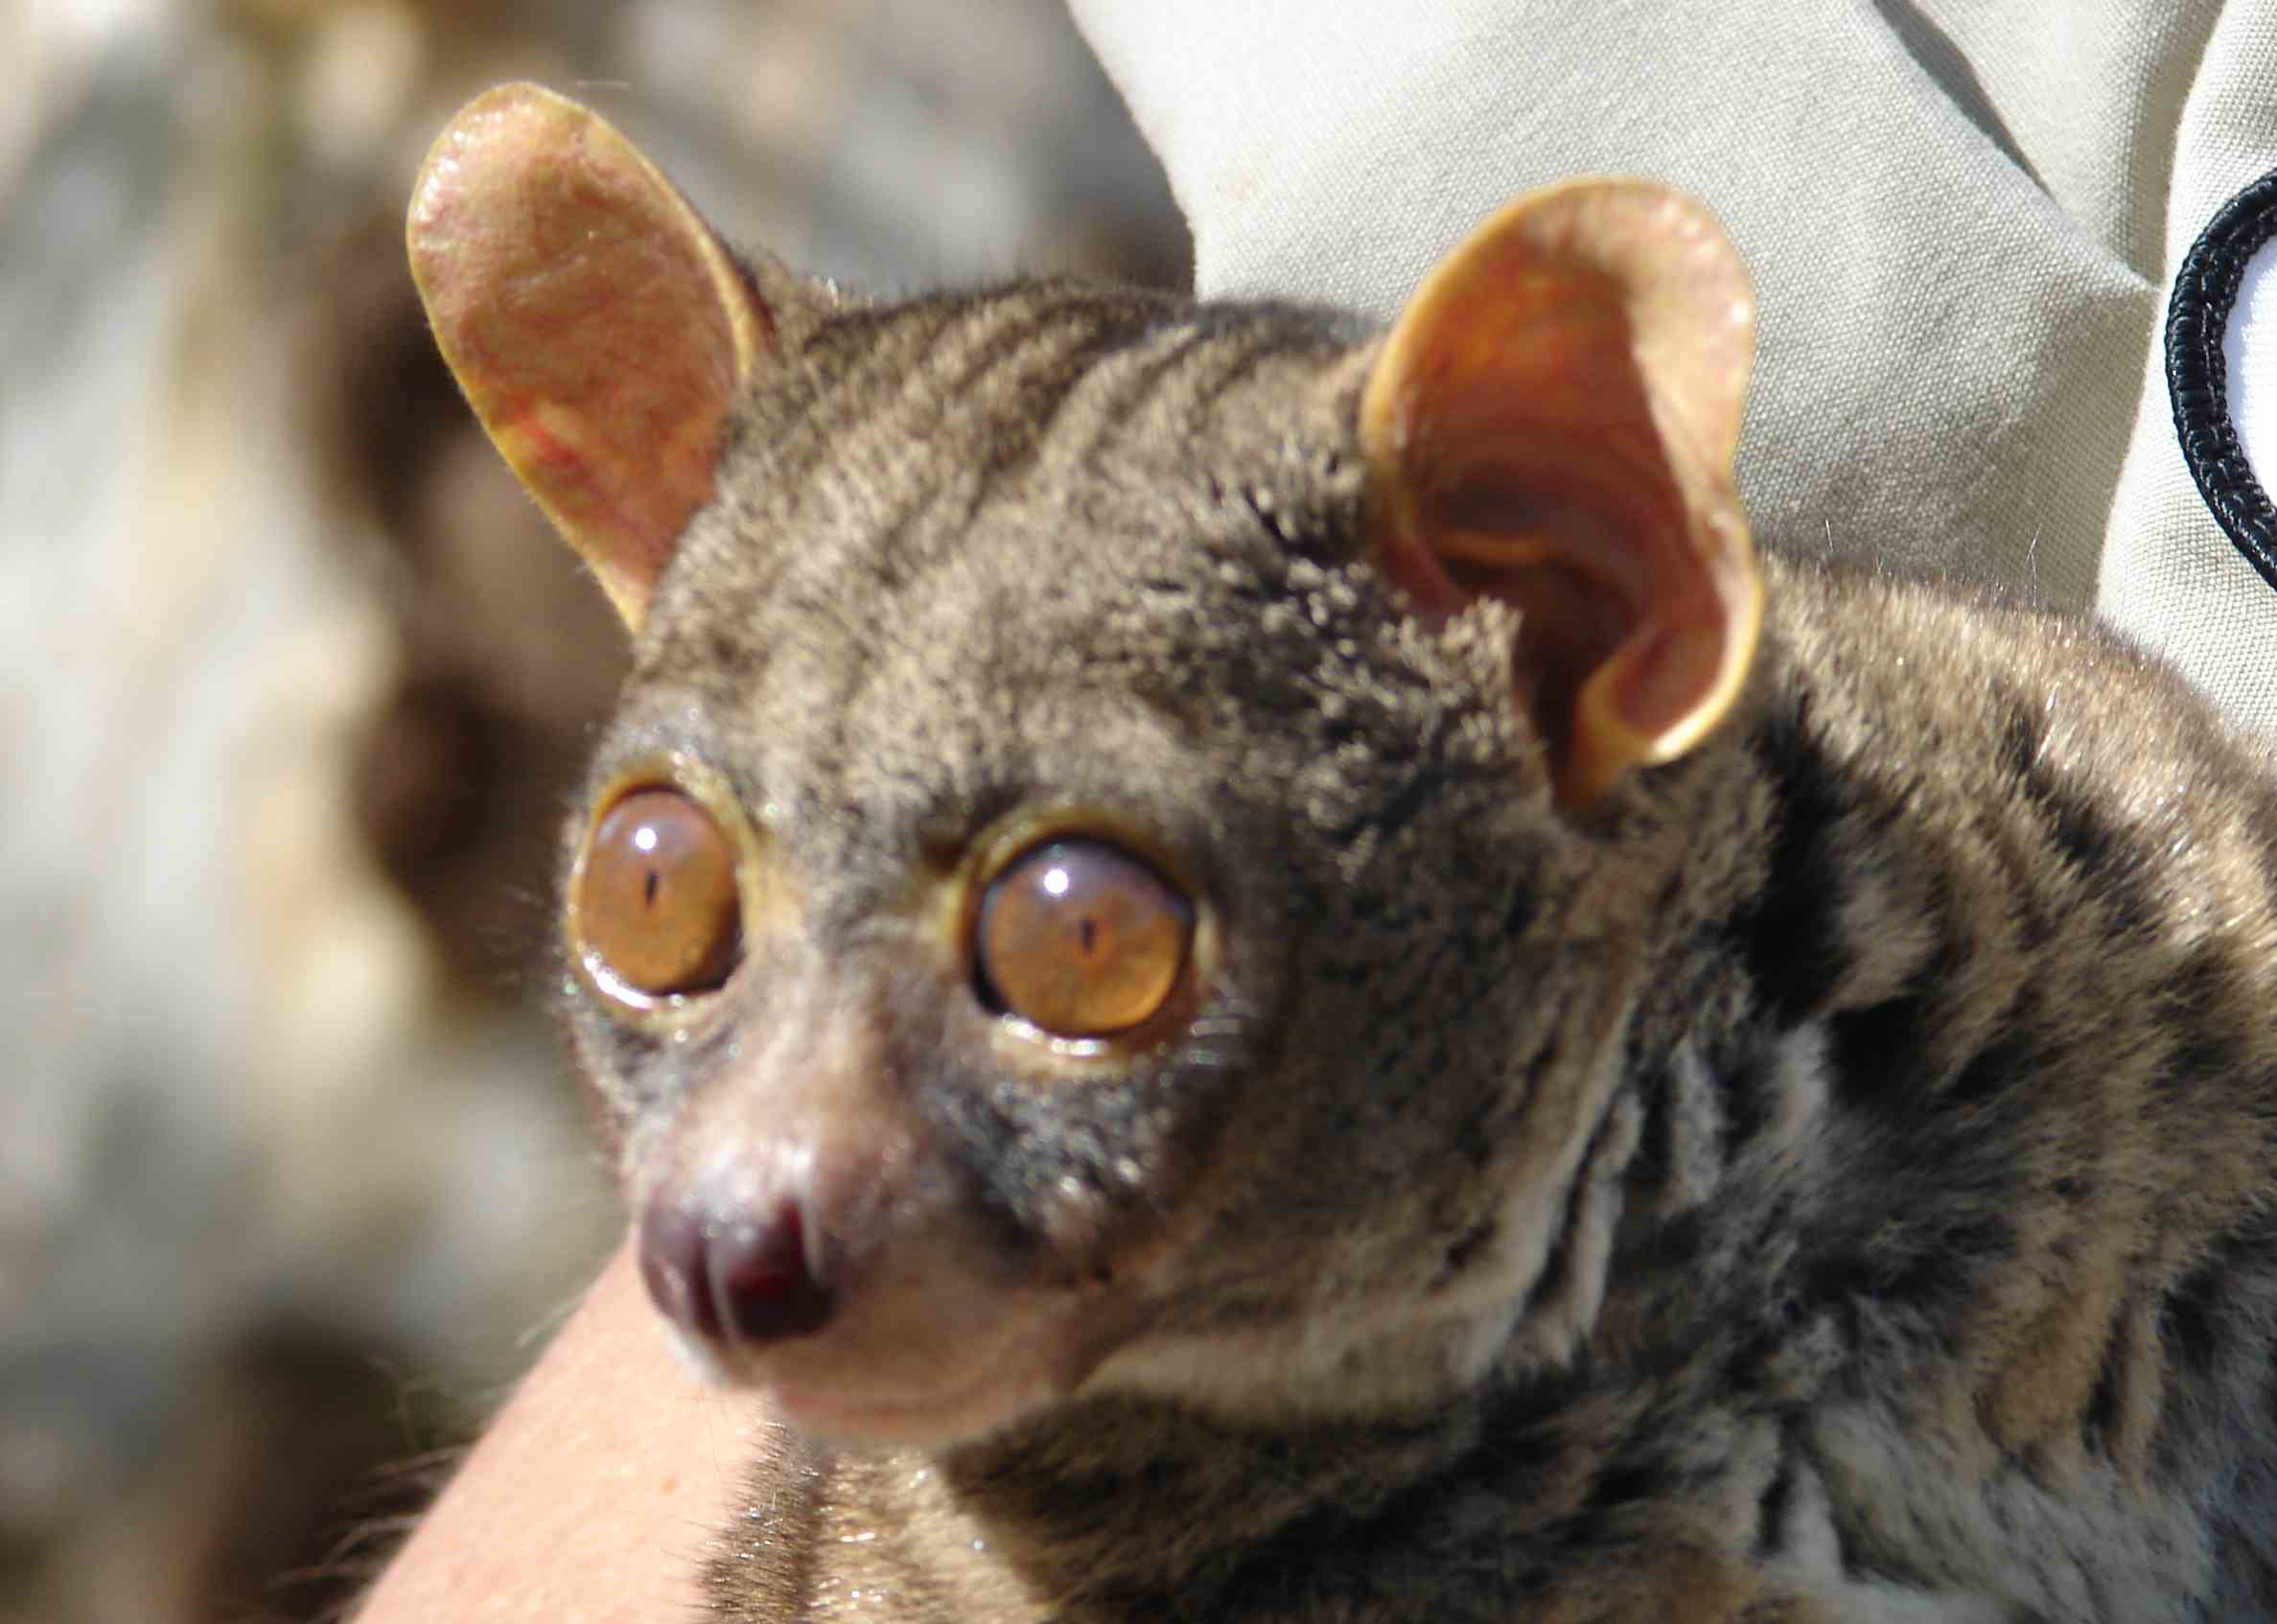 BUSH BABY: The Cries of a Creature Claimed By Some To Be ...